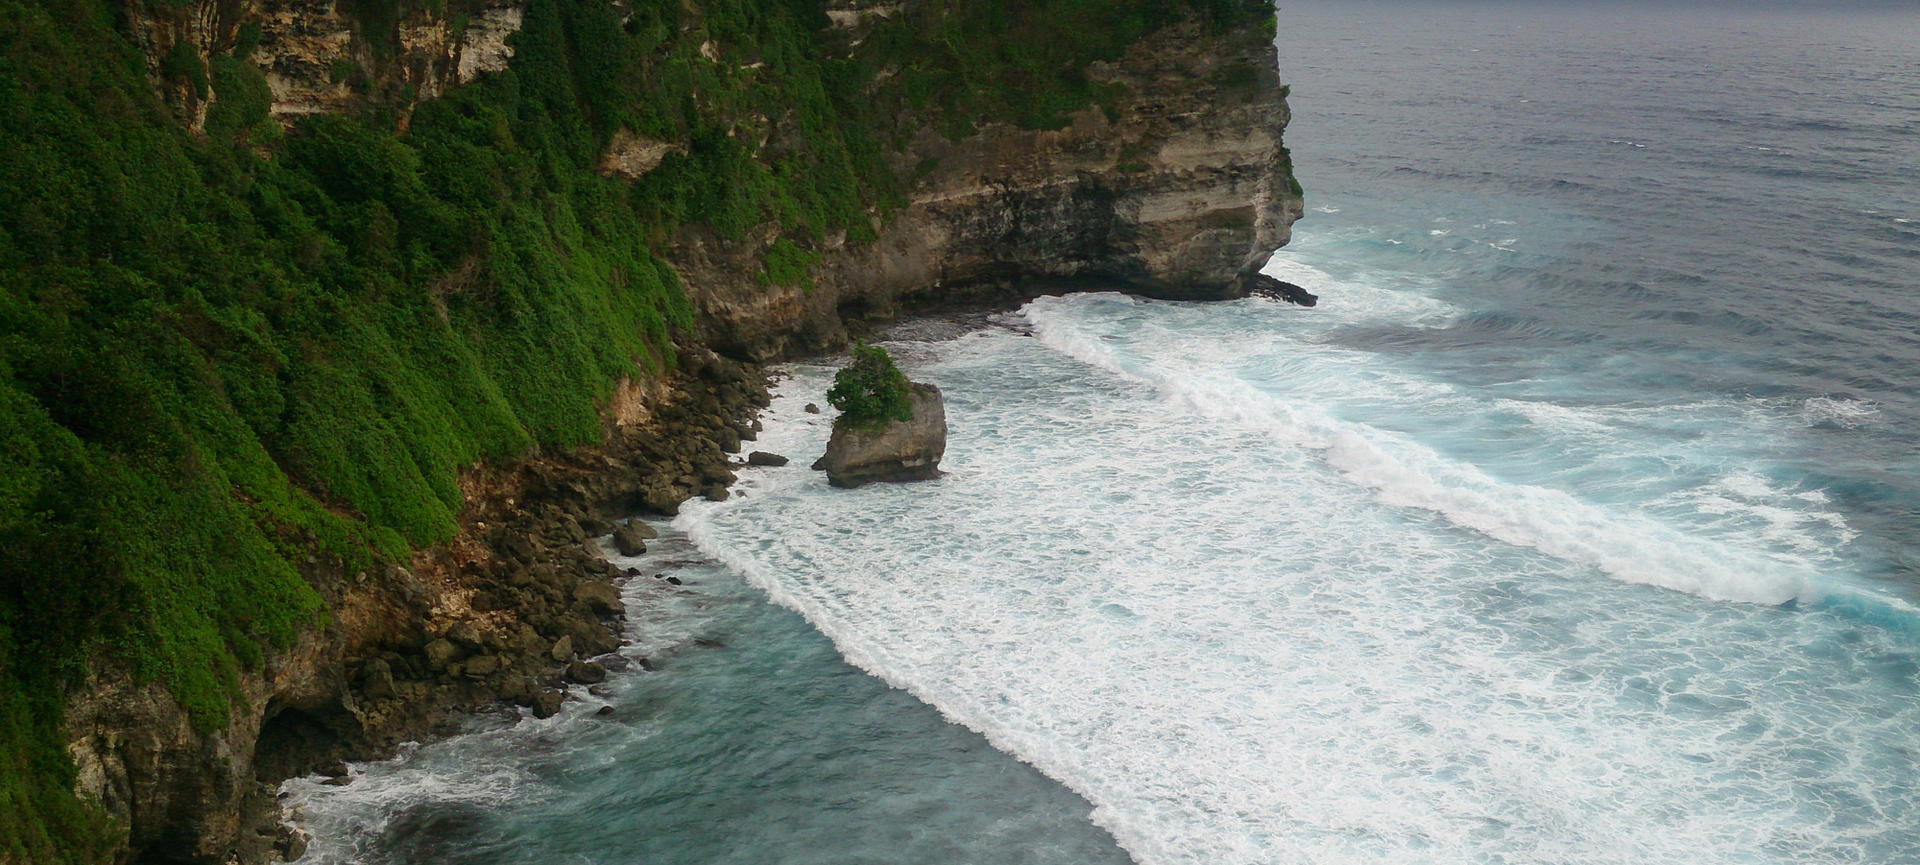 Southern Bali On A Budget: Under 30 USD Per Day